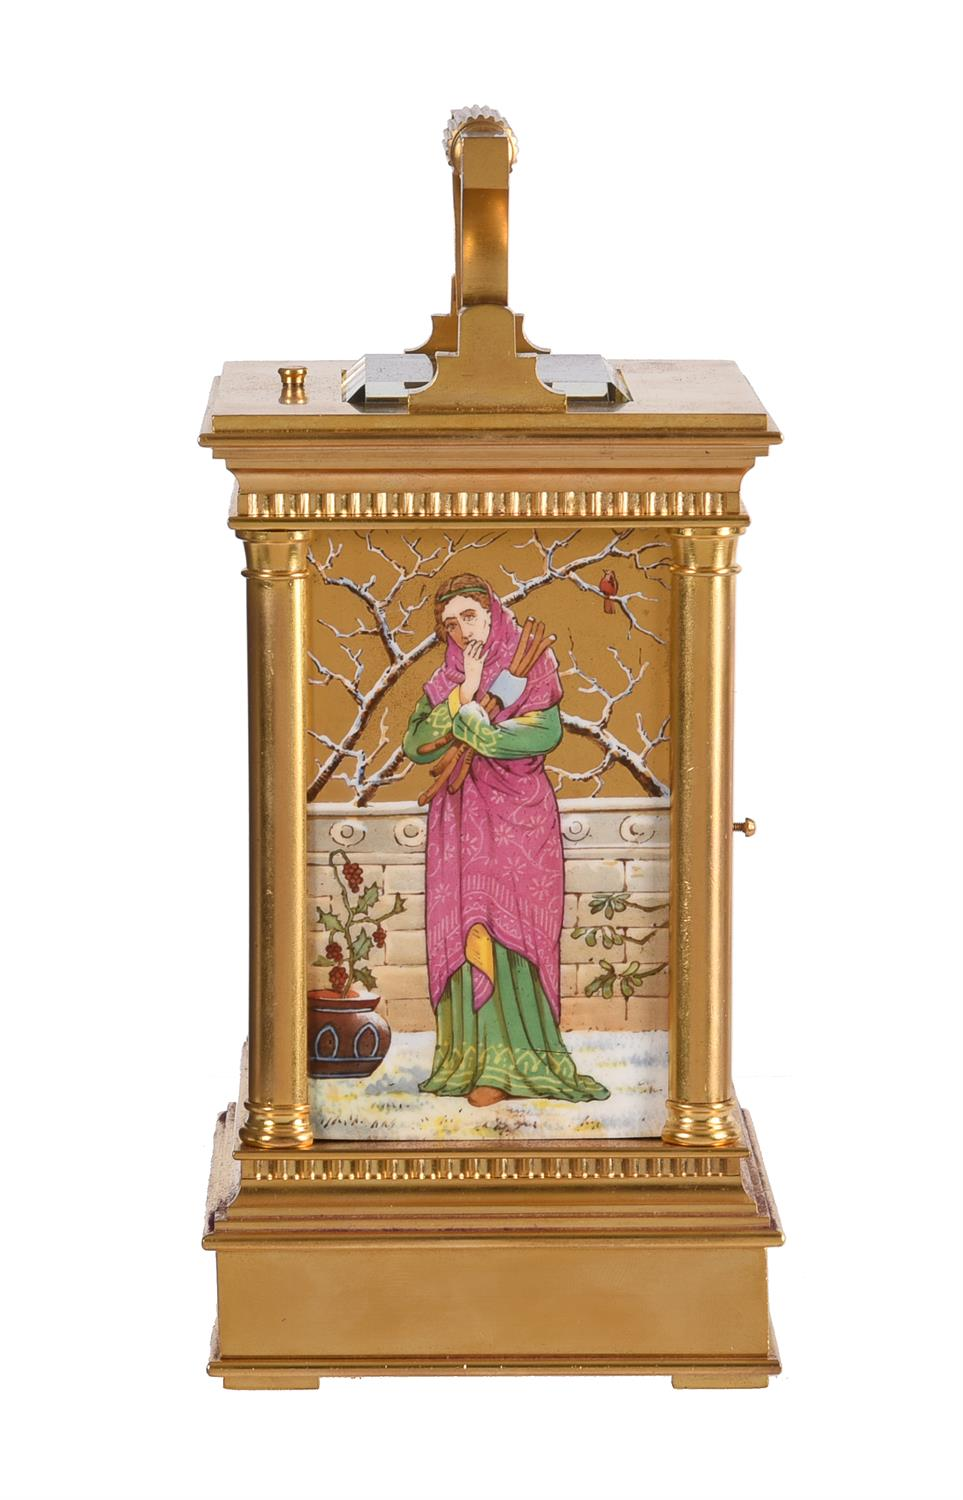 A fine French gilt brass carriage clock with painted porcelain panels and push-button repeat - Image 4 of 7